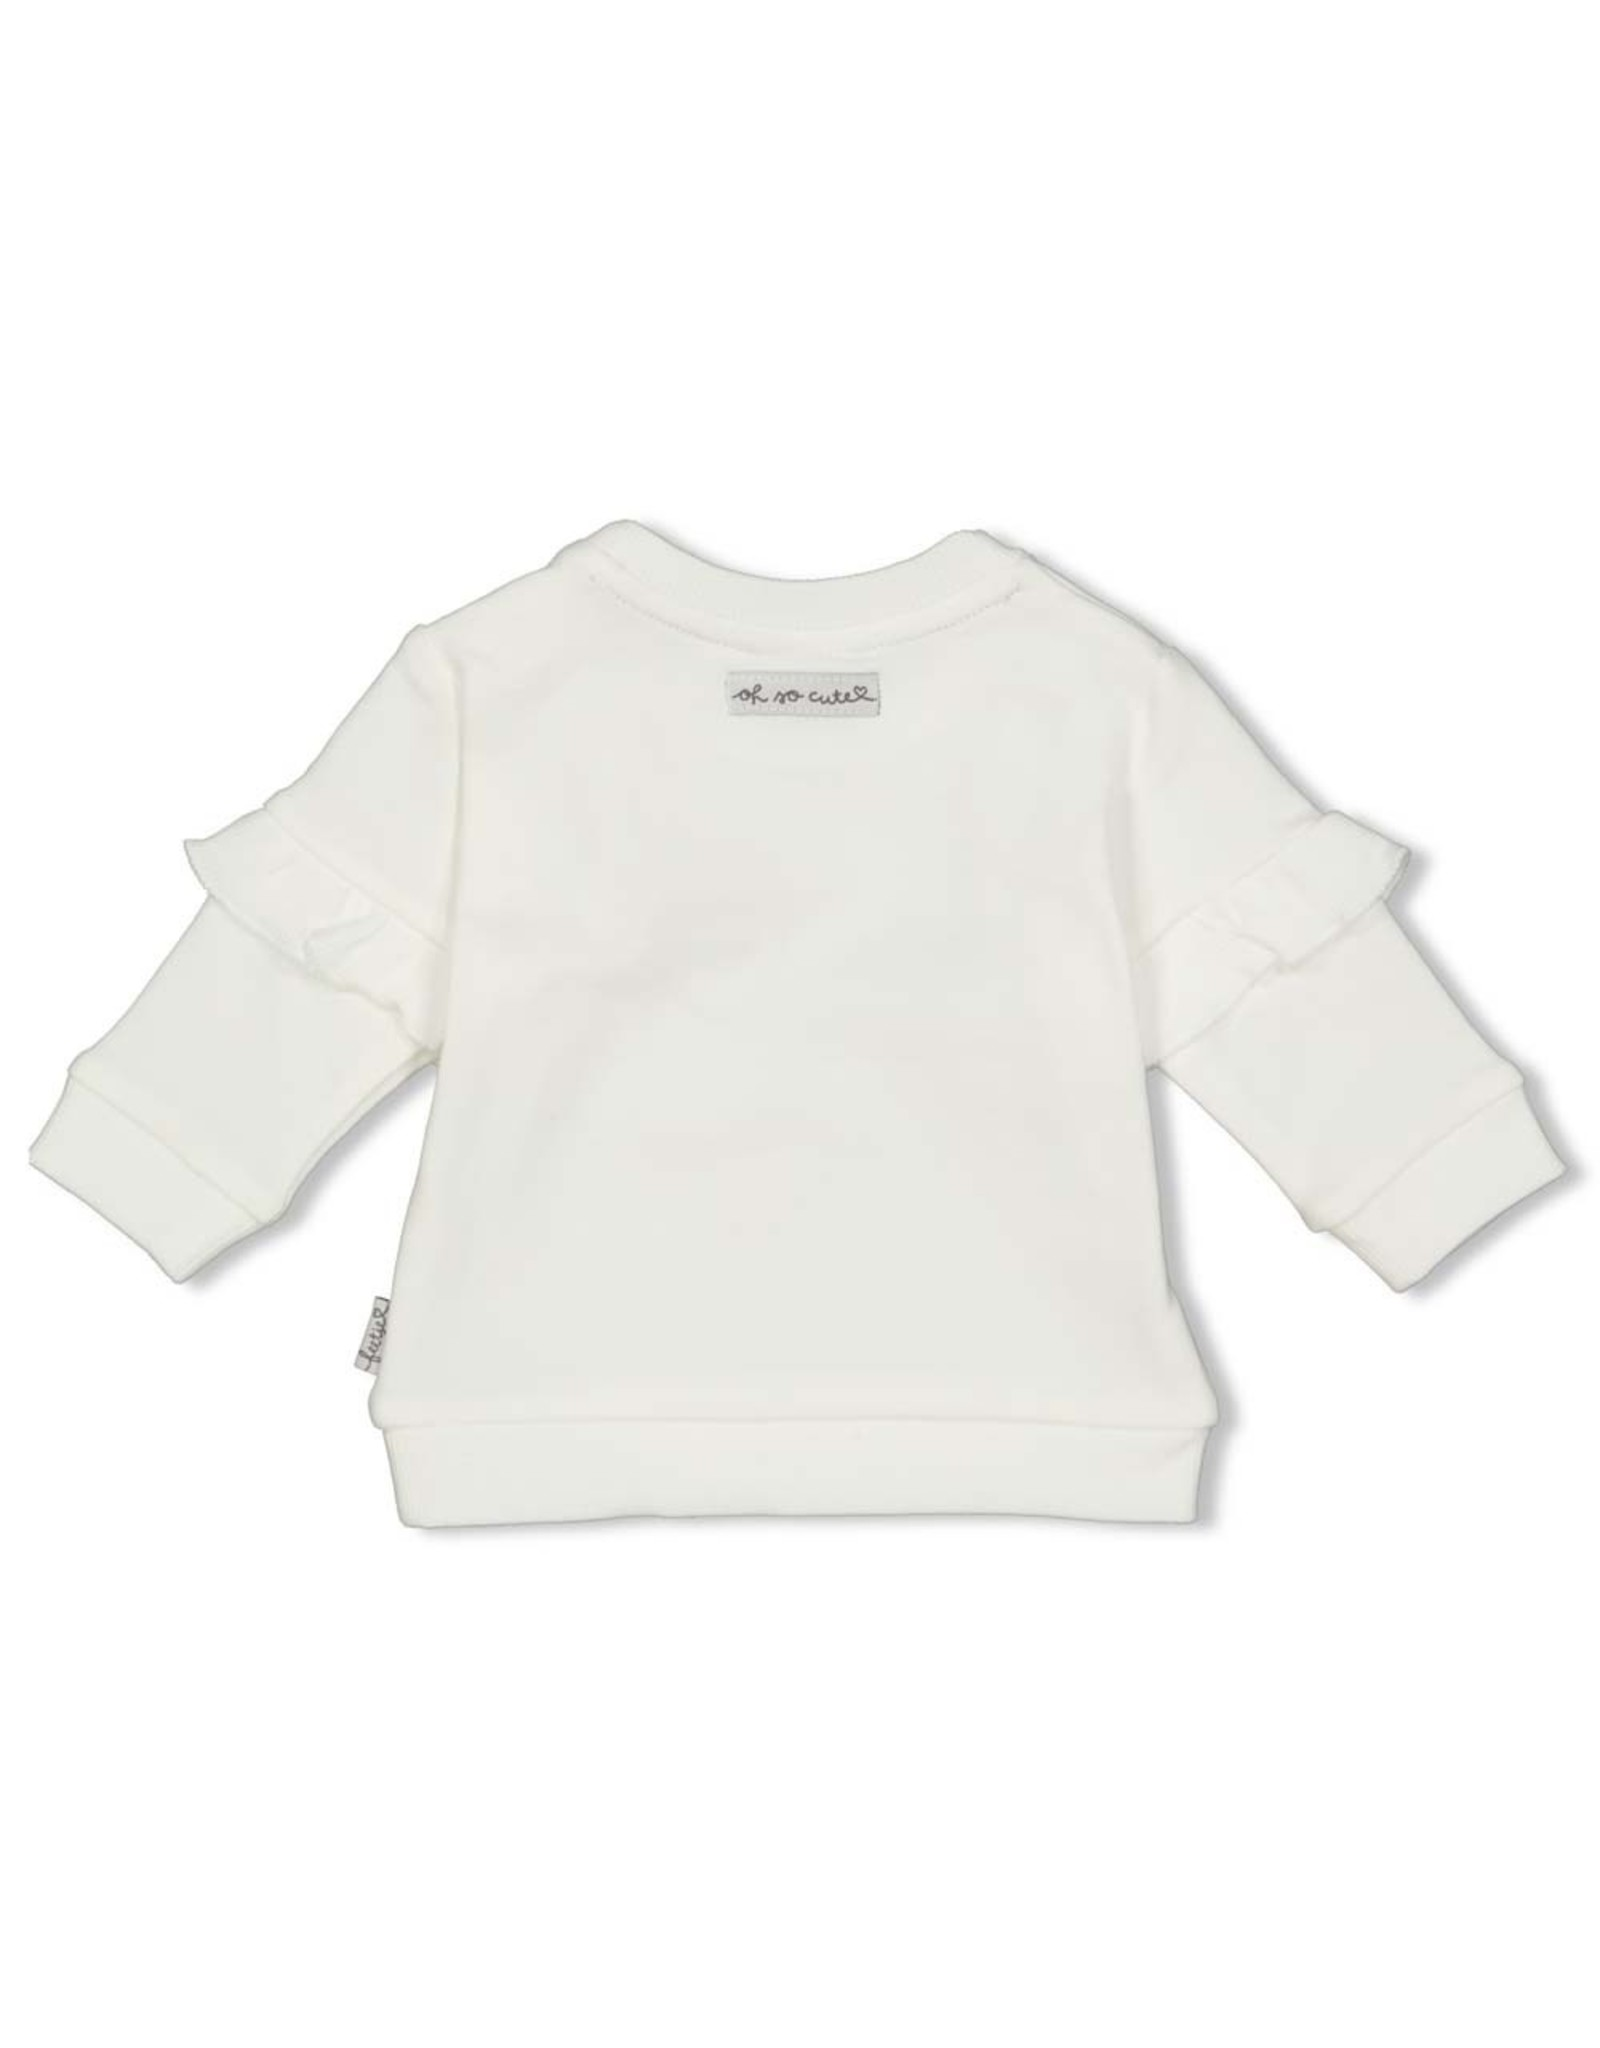 Feetje Sweater - Panther Cutie. Offwhite